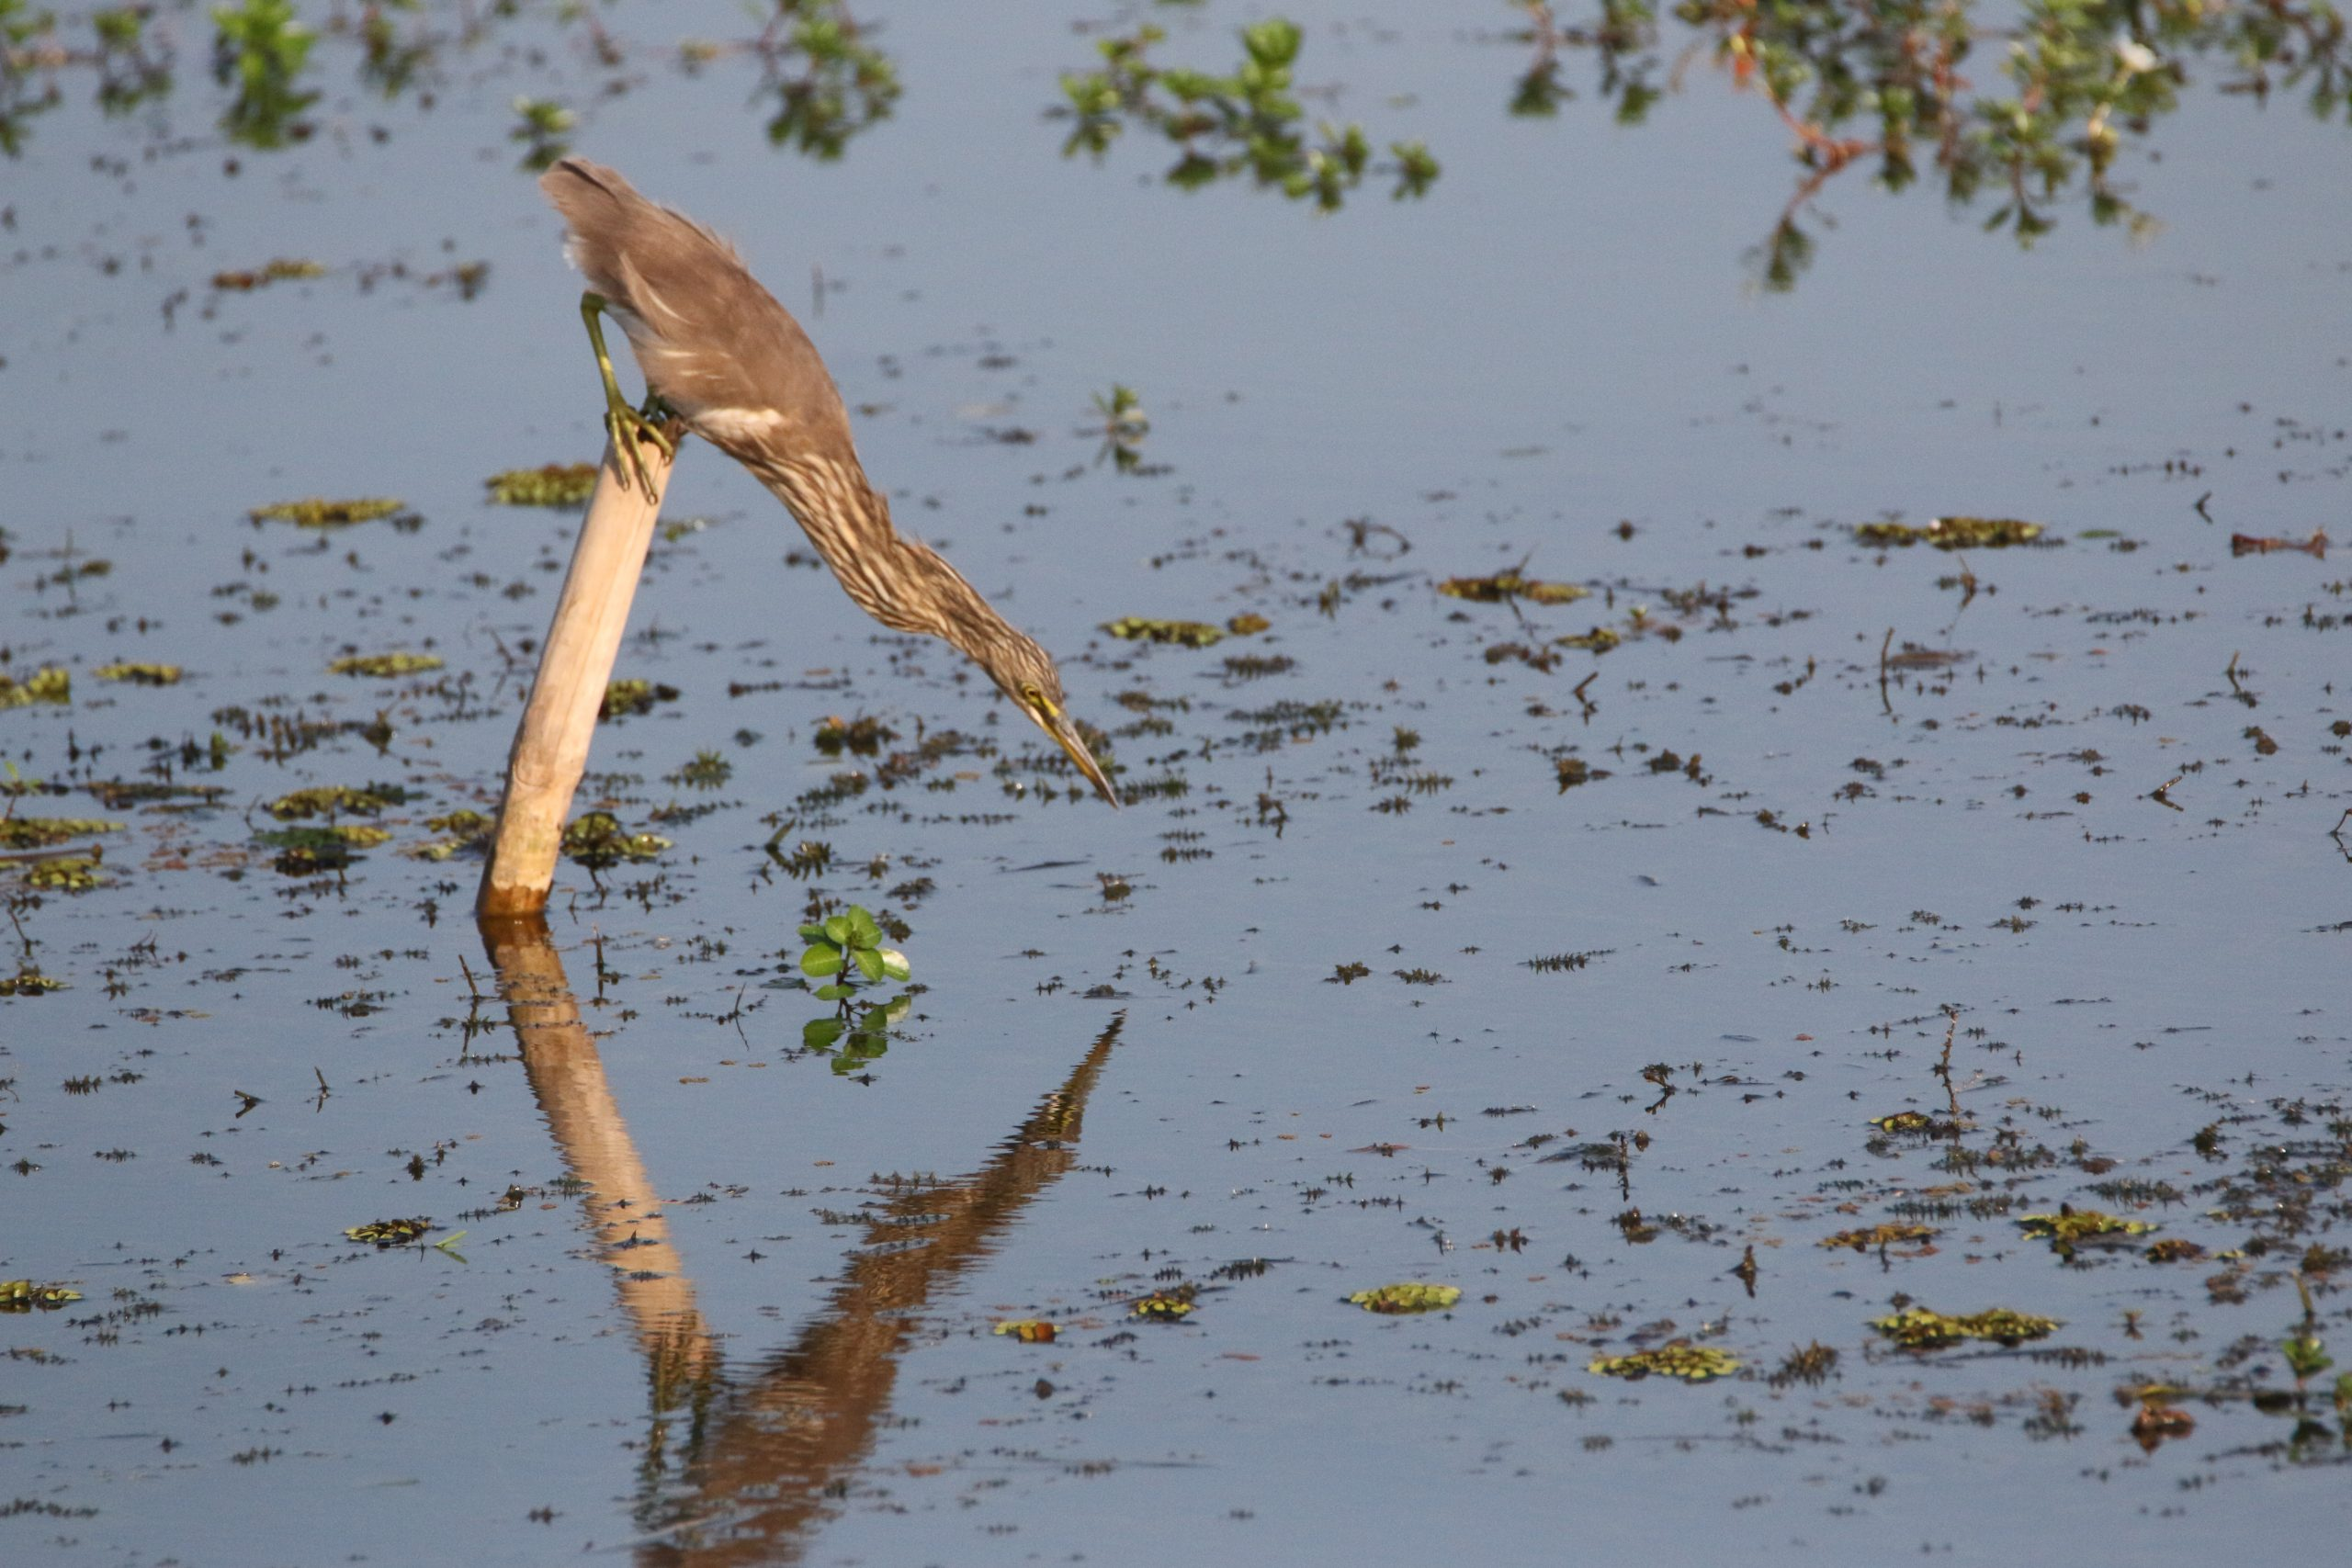 Pond Heron preparing to catch a fish in the pond